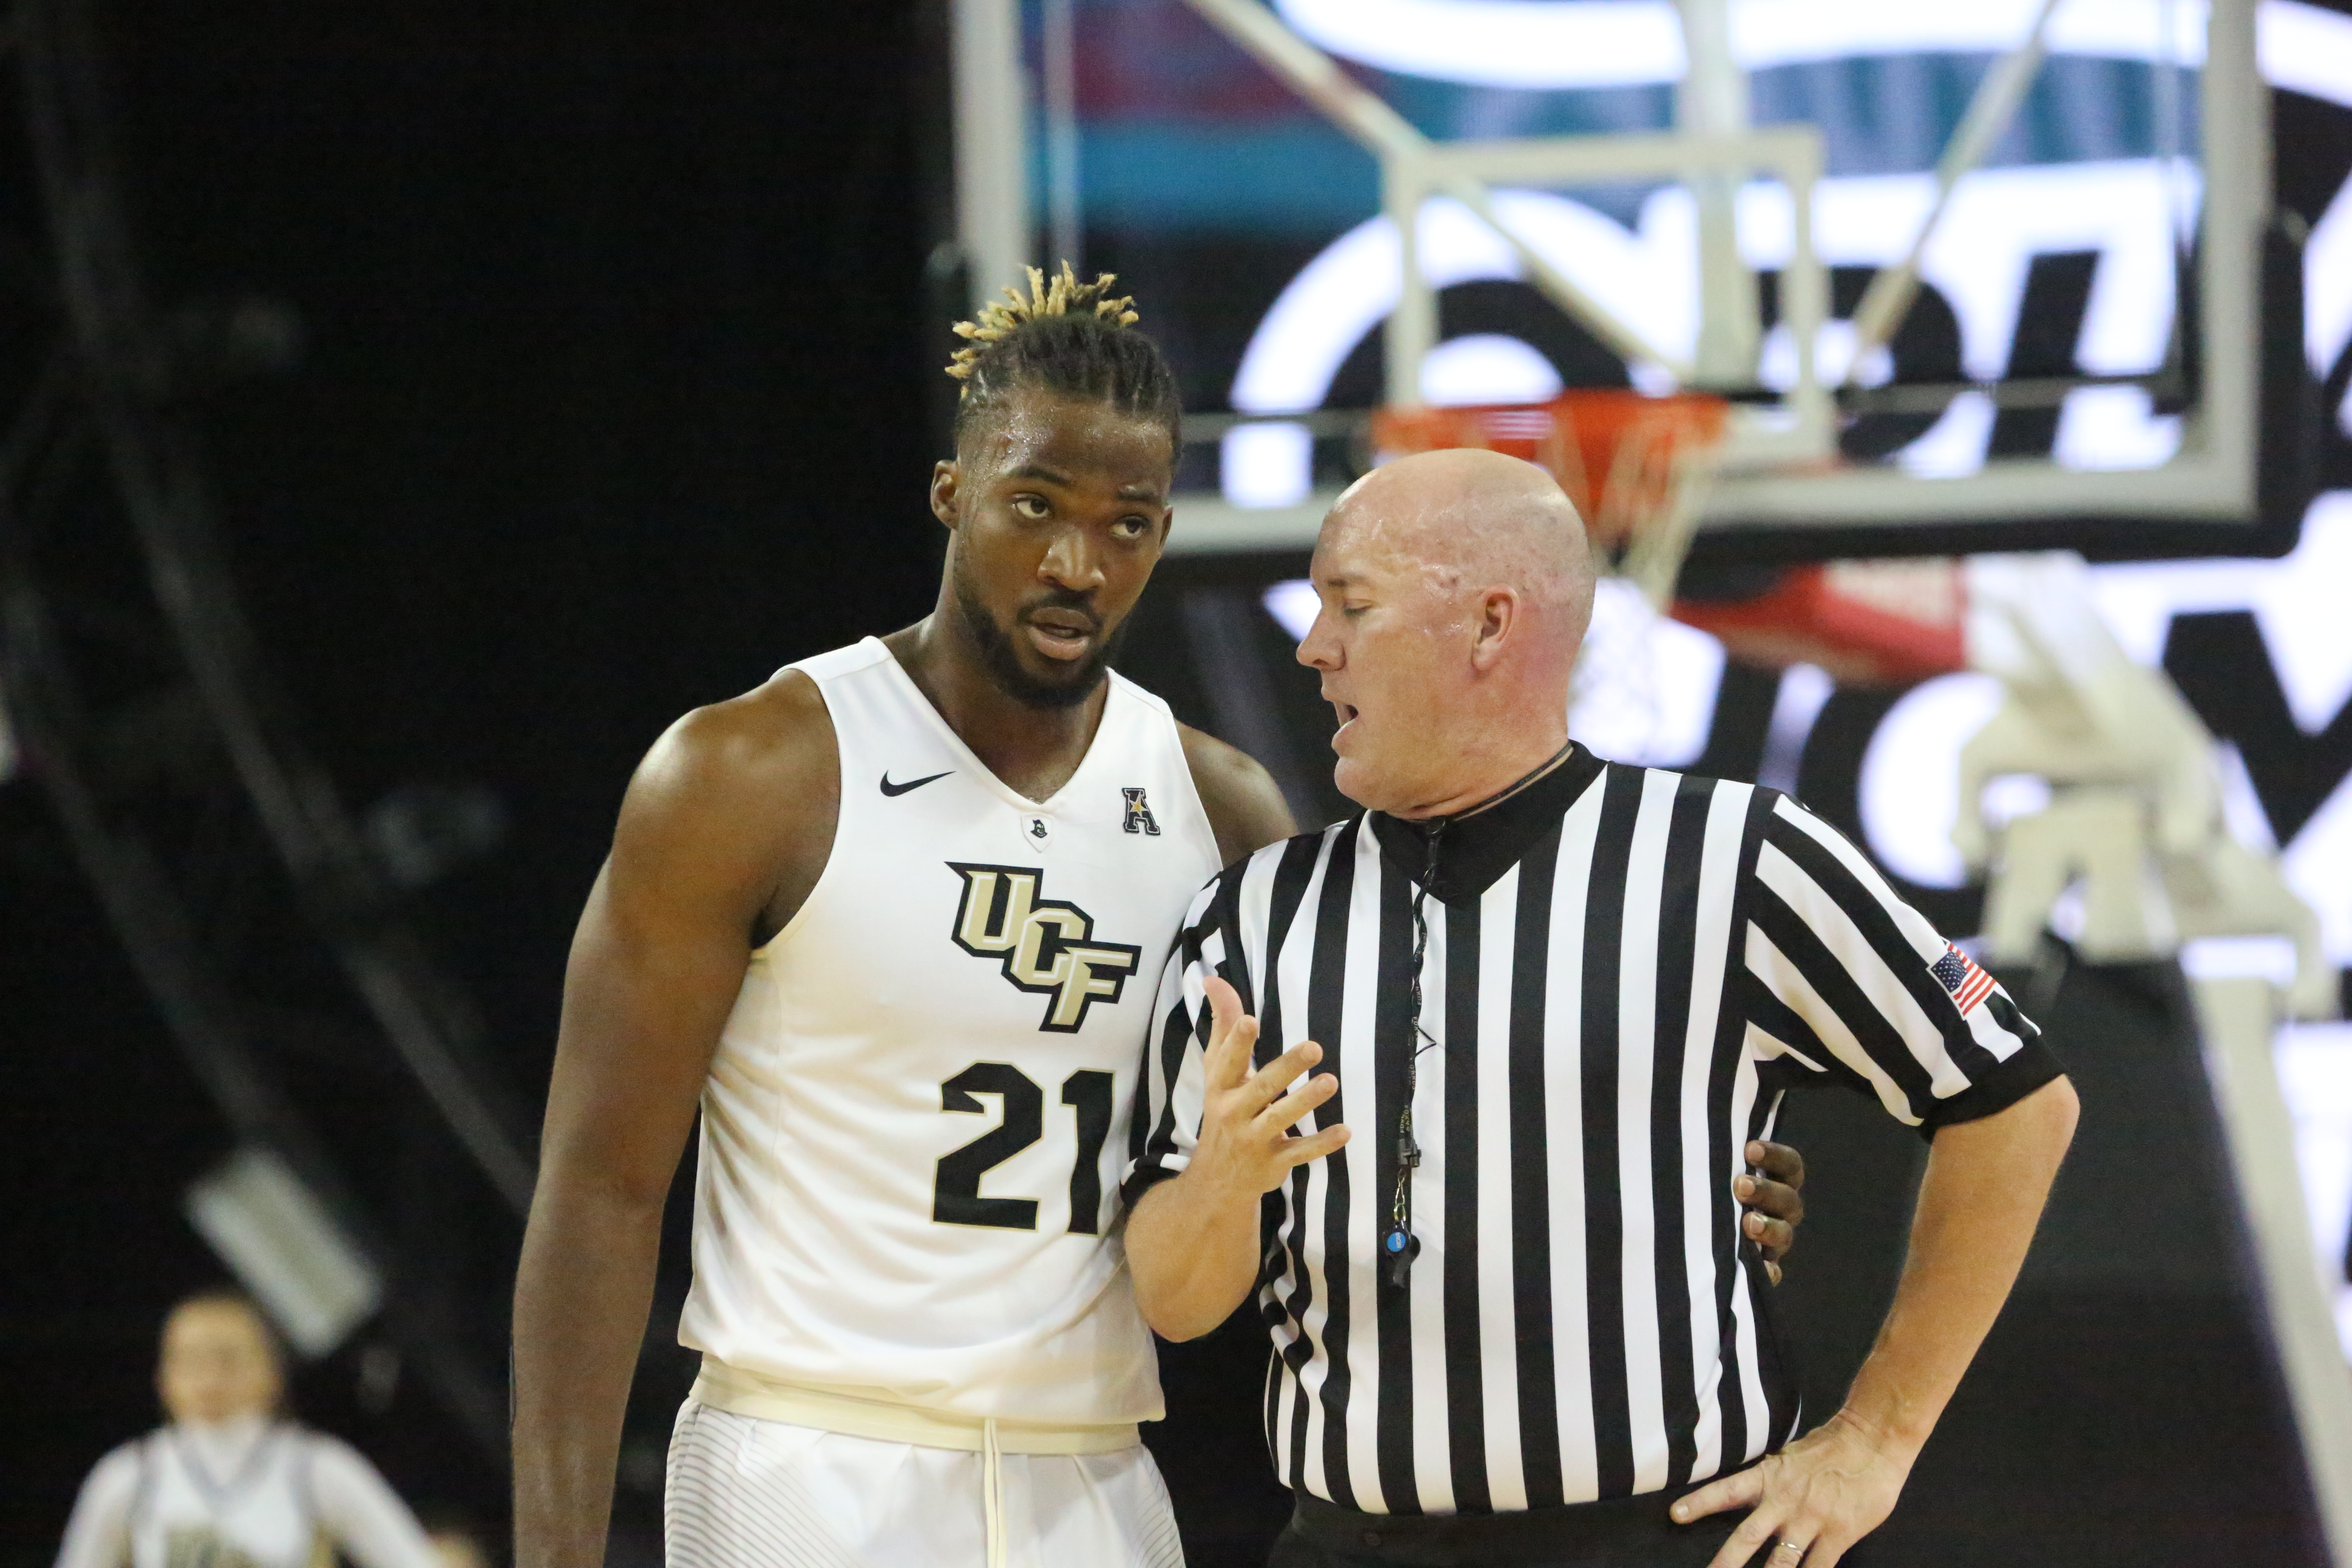 Gallery: UCF Basketball Opens Season with 84-70 Win over Rider